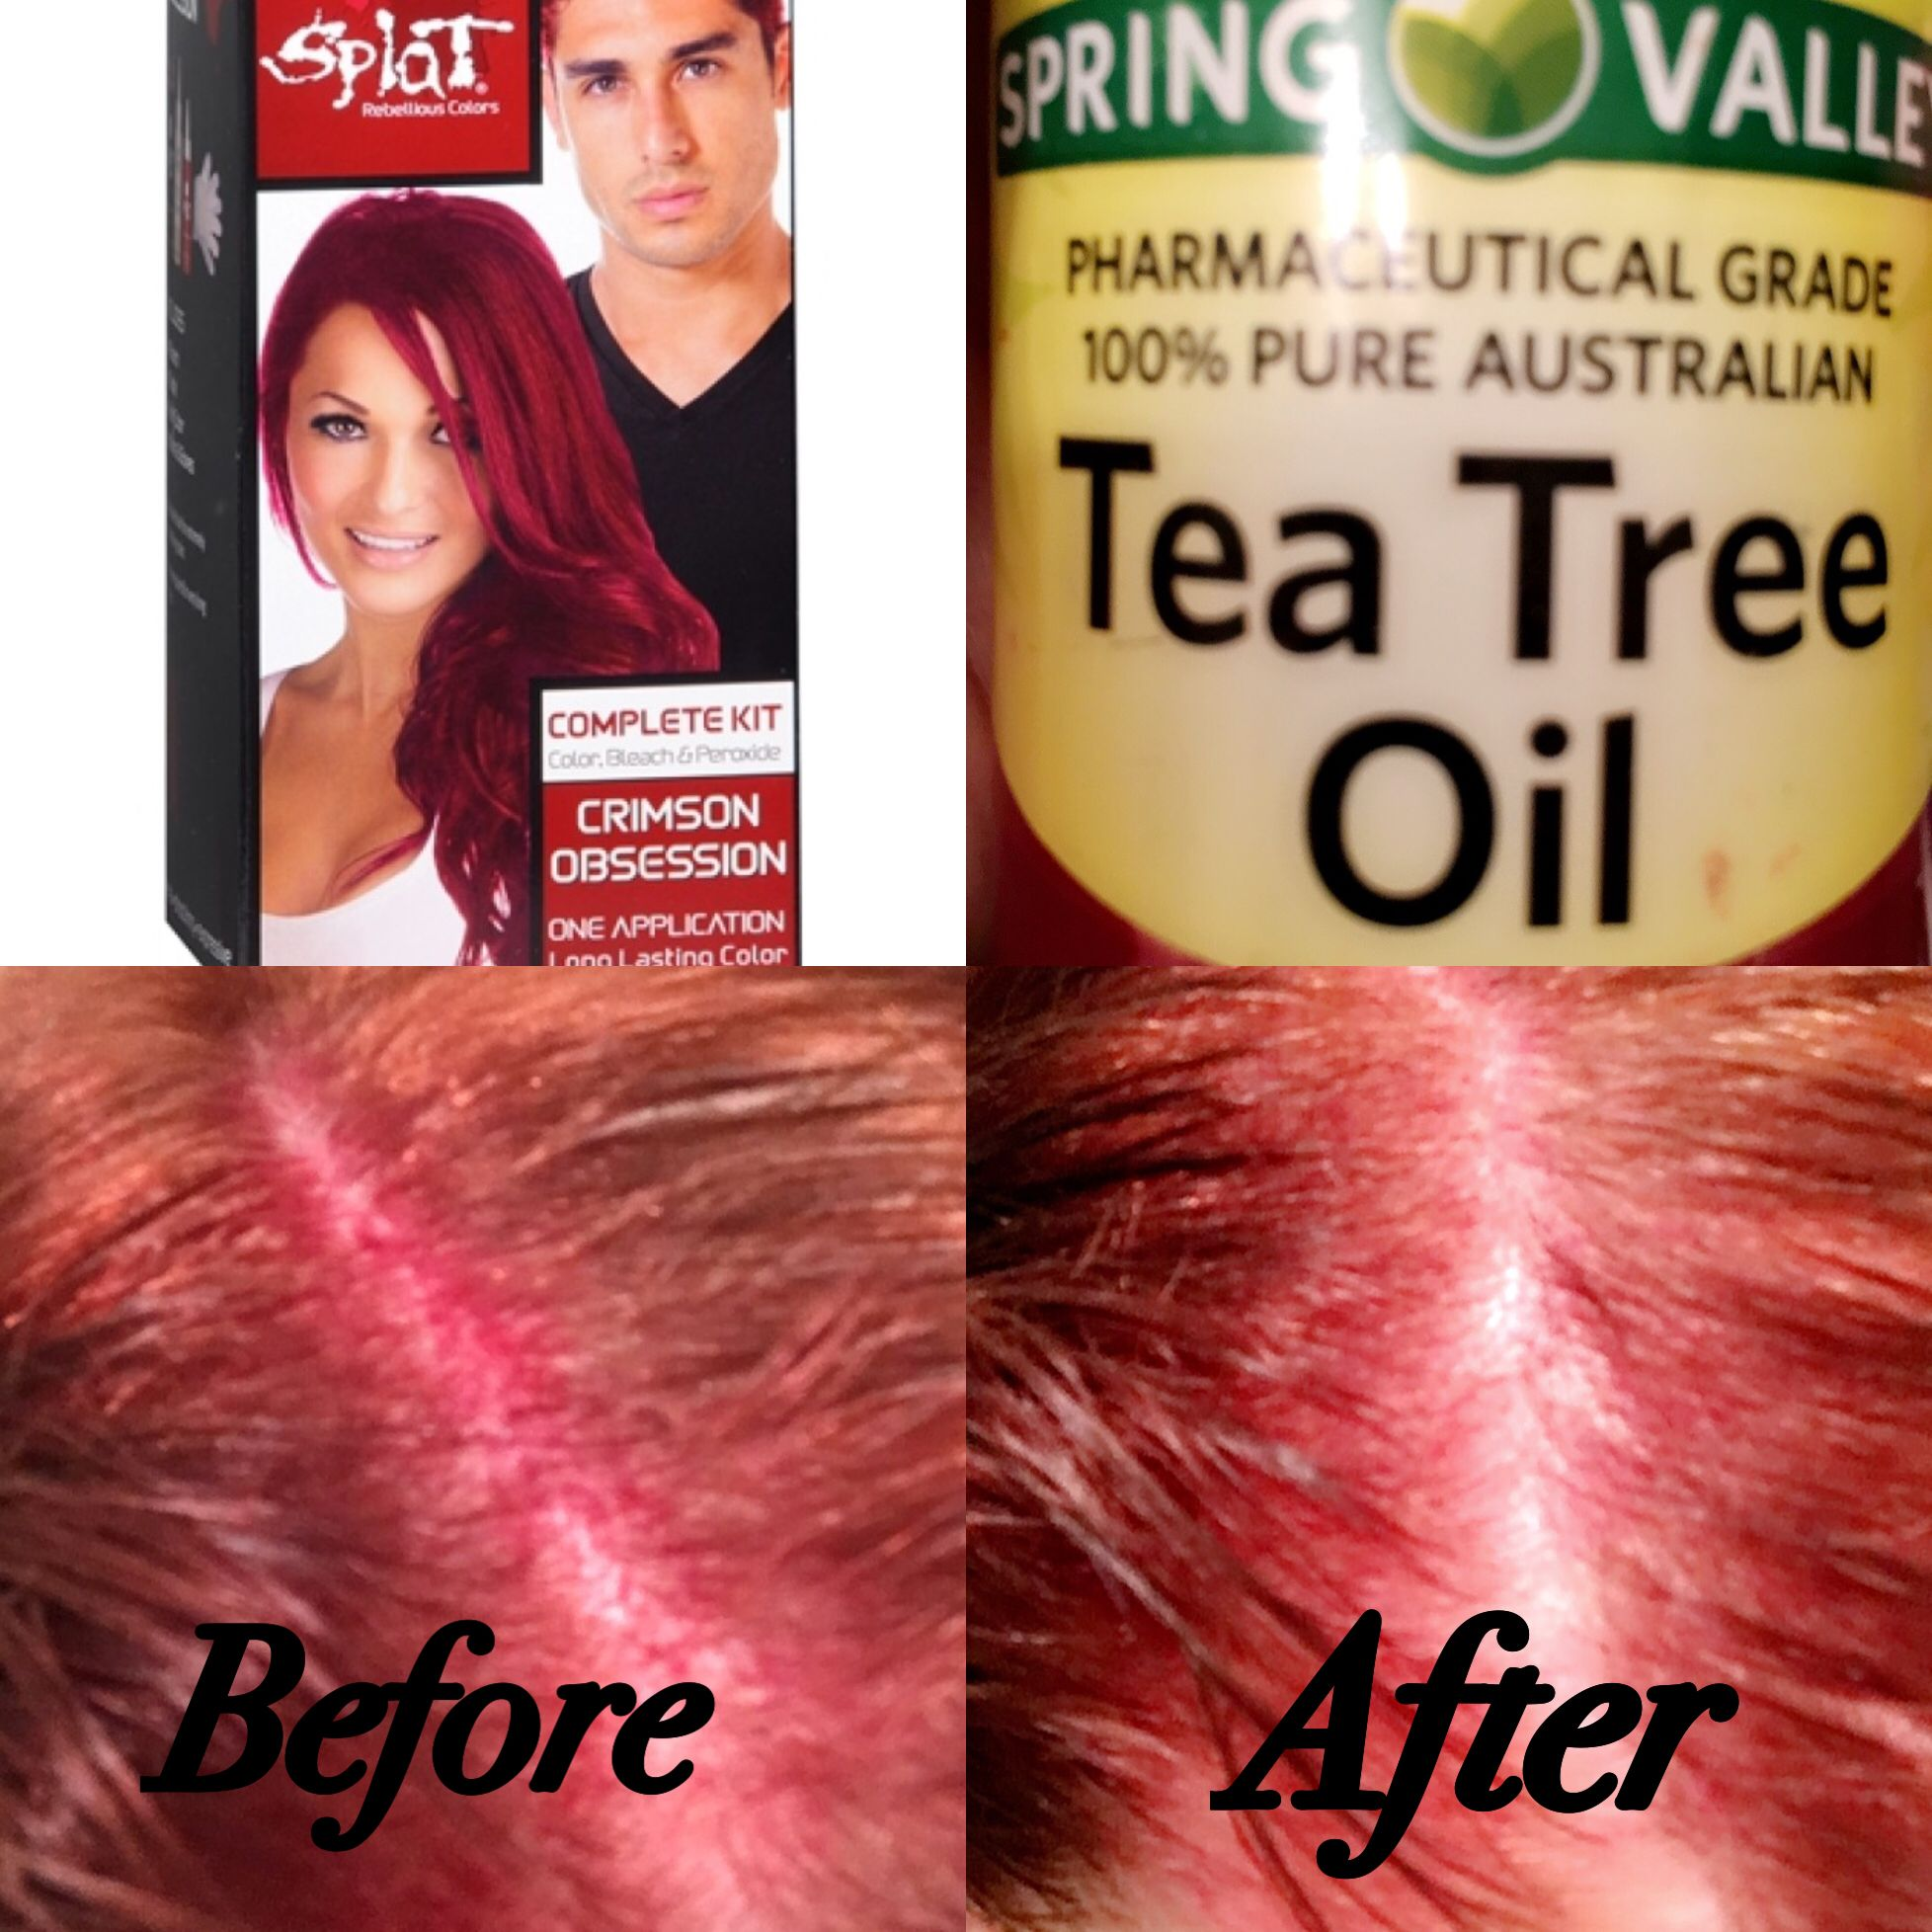 Get Rid Of Splat Hair Dye Stains On Your Scalp With Tea Tree Oil Splat Remove Stainedscalp Teatreeoil Splat Hair Dye Hair Dye Tips Dyed Hair